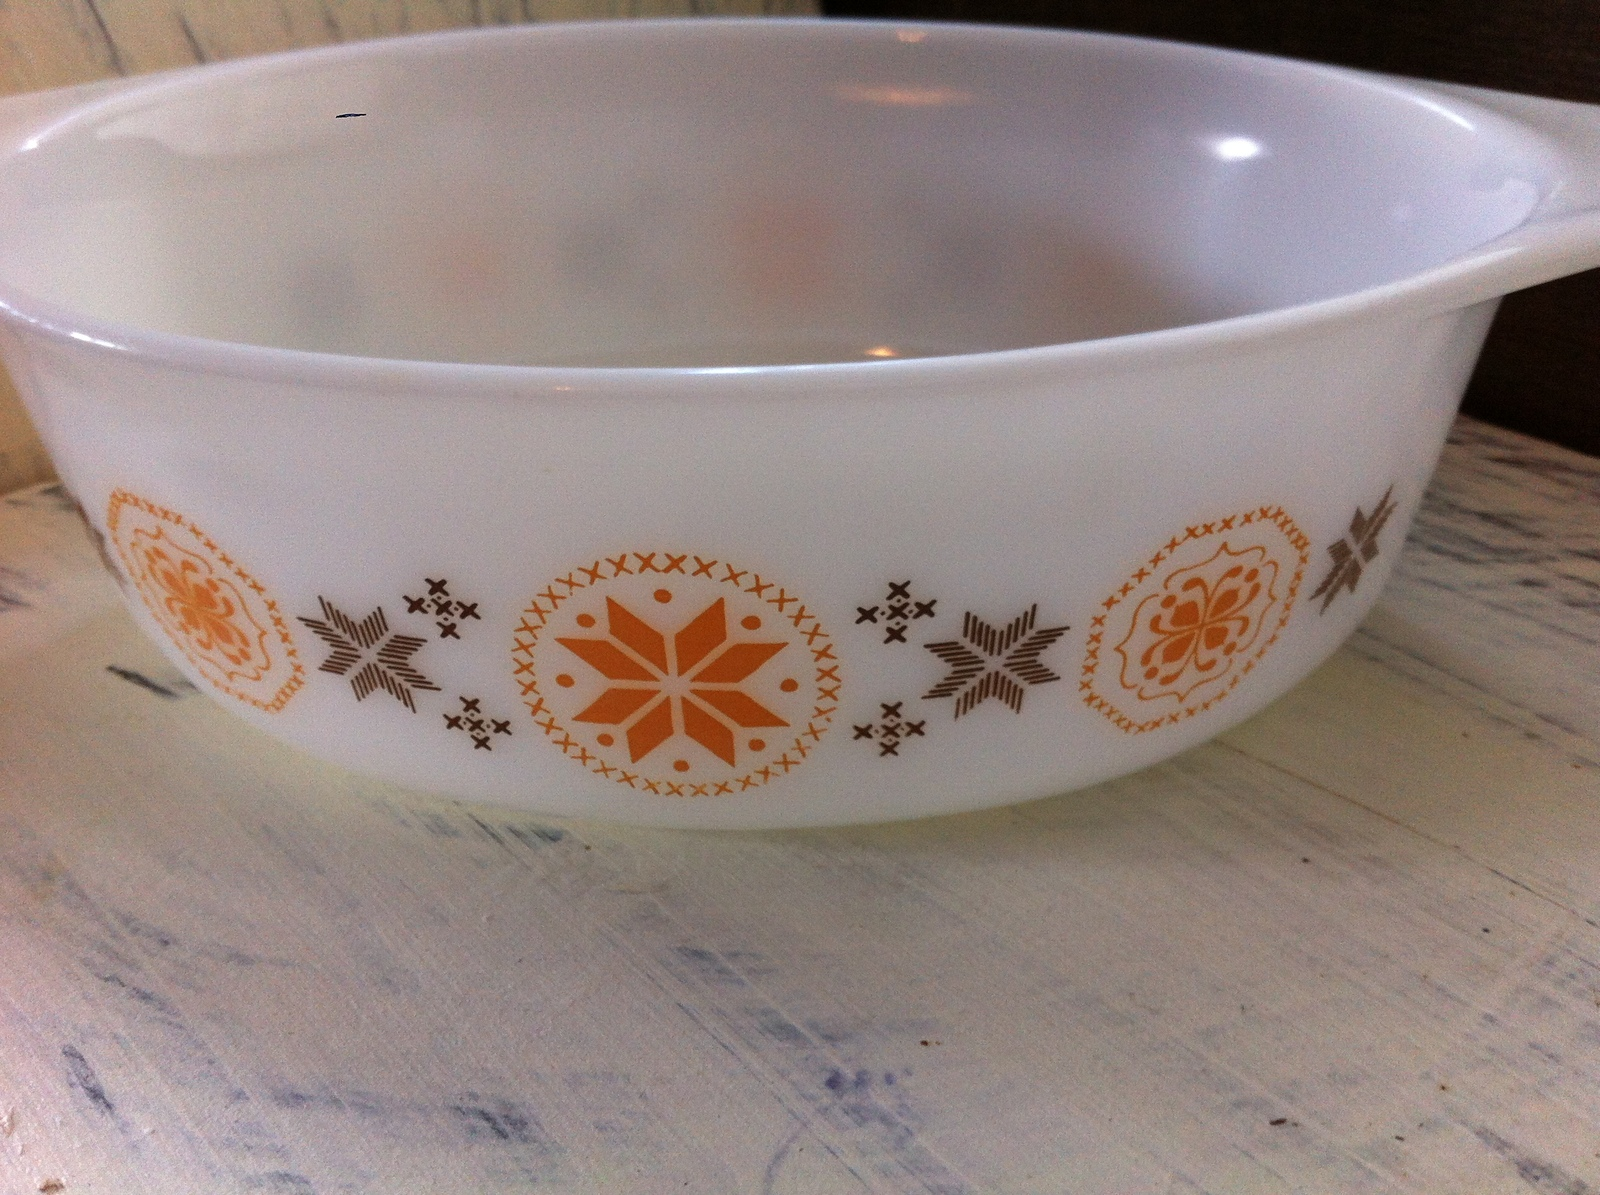 Vintage Pyrex Town & Country Brown/Orange Casserole Dish No. 043 1 1/2 qt.~ USA